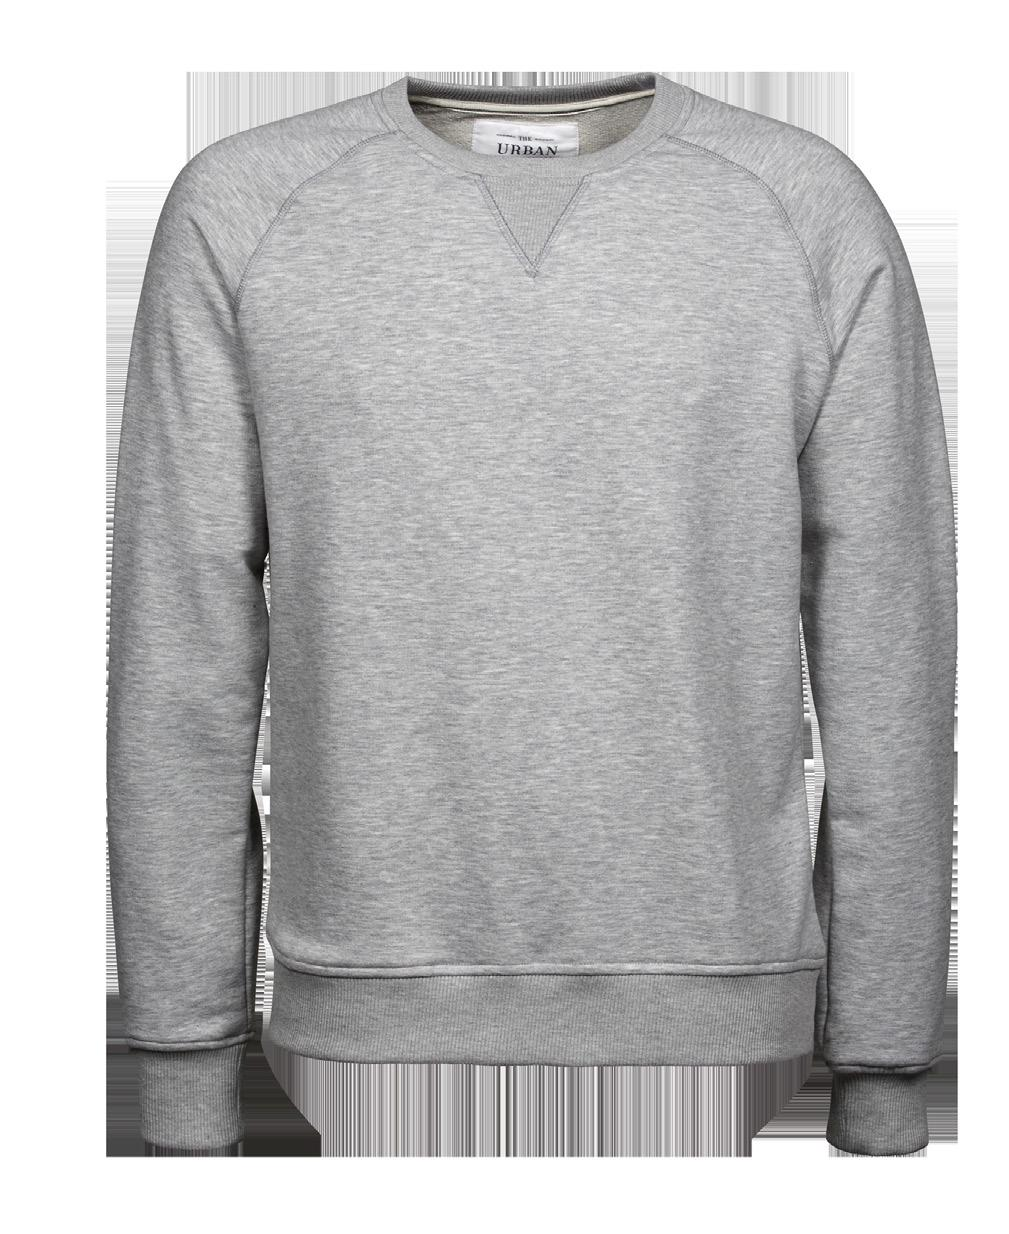 1 2 GO URBAN STYLE Urban sweat omdanner den